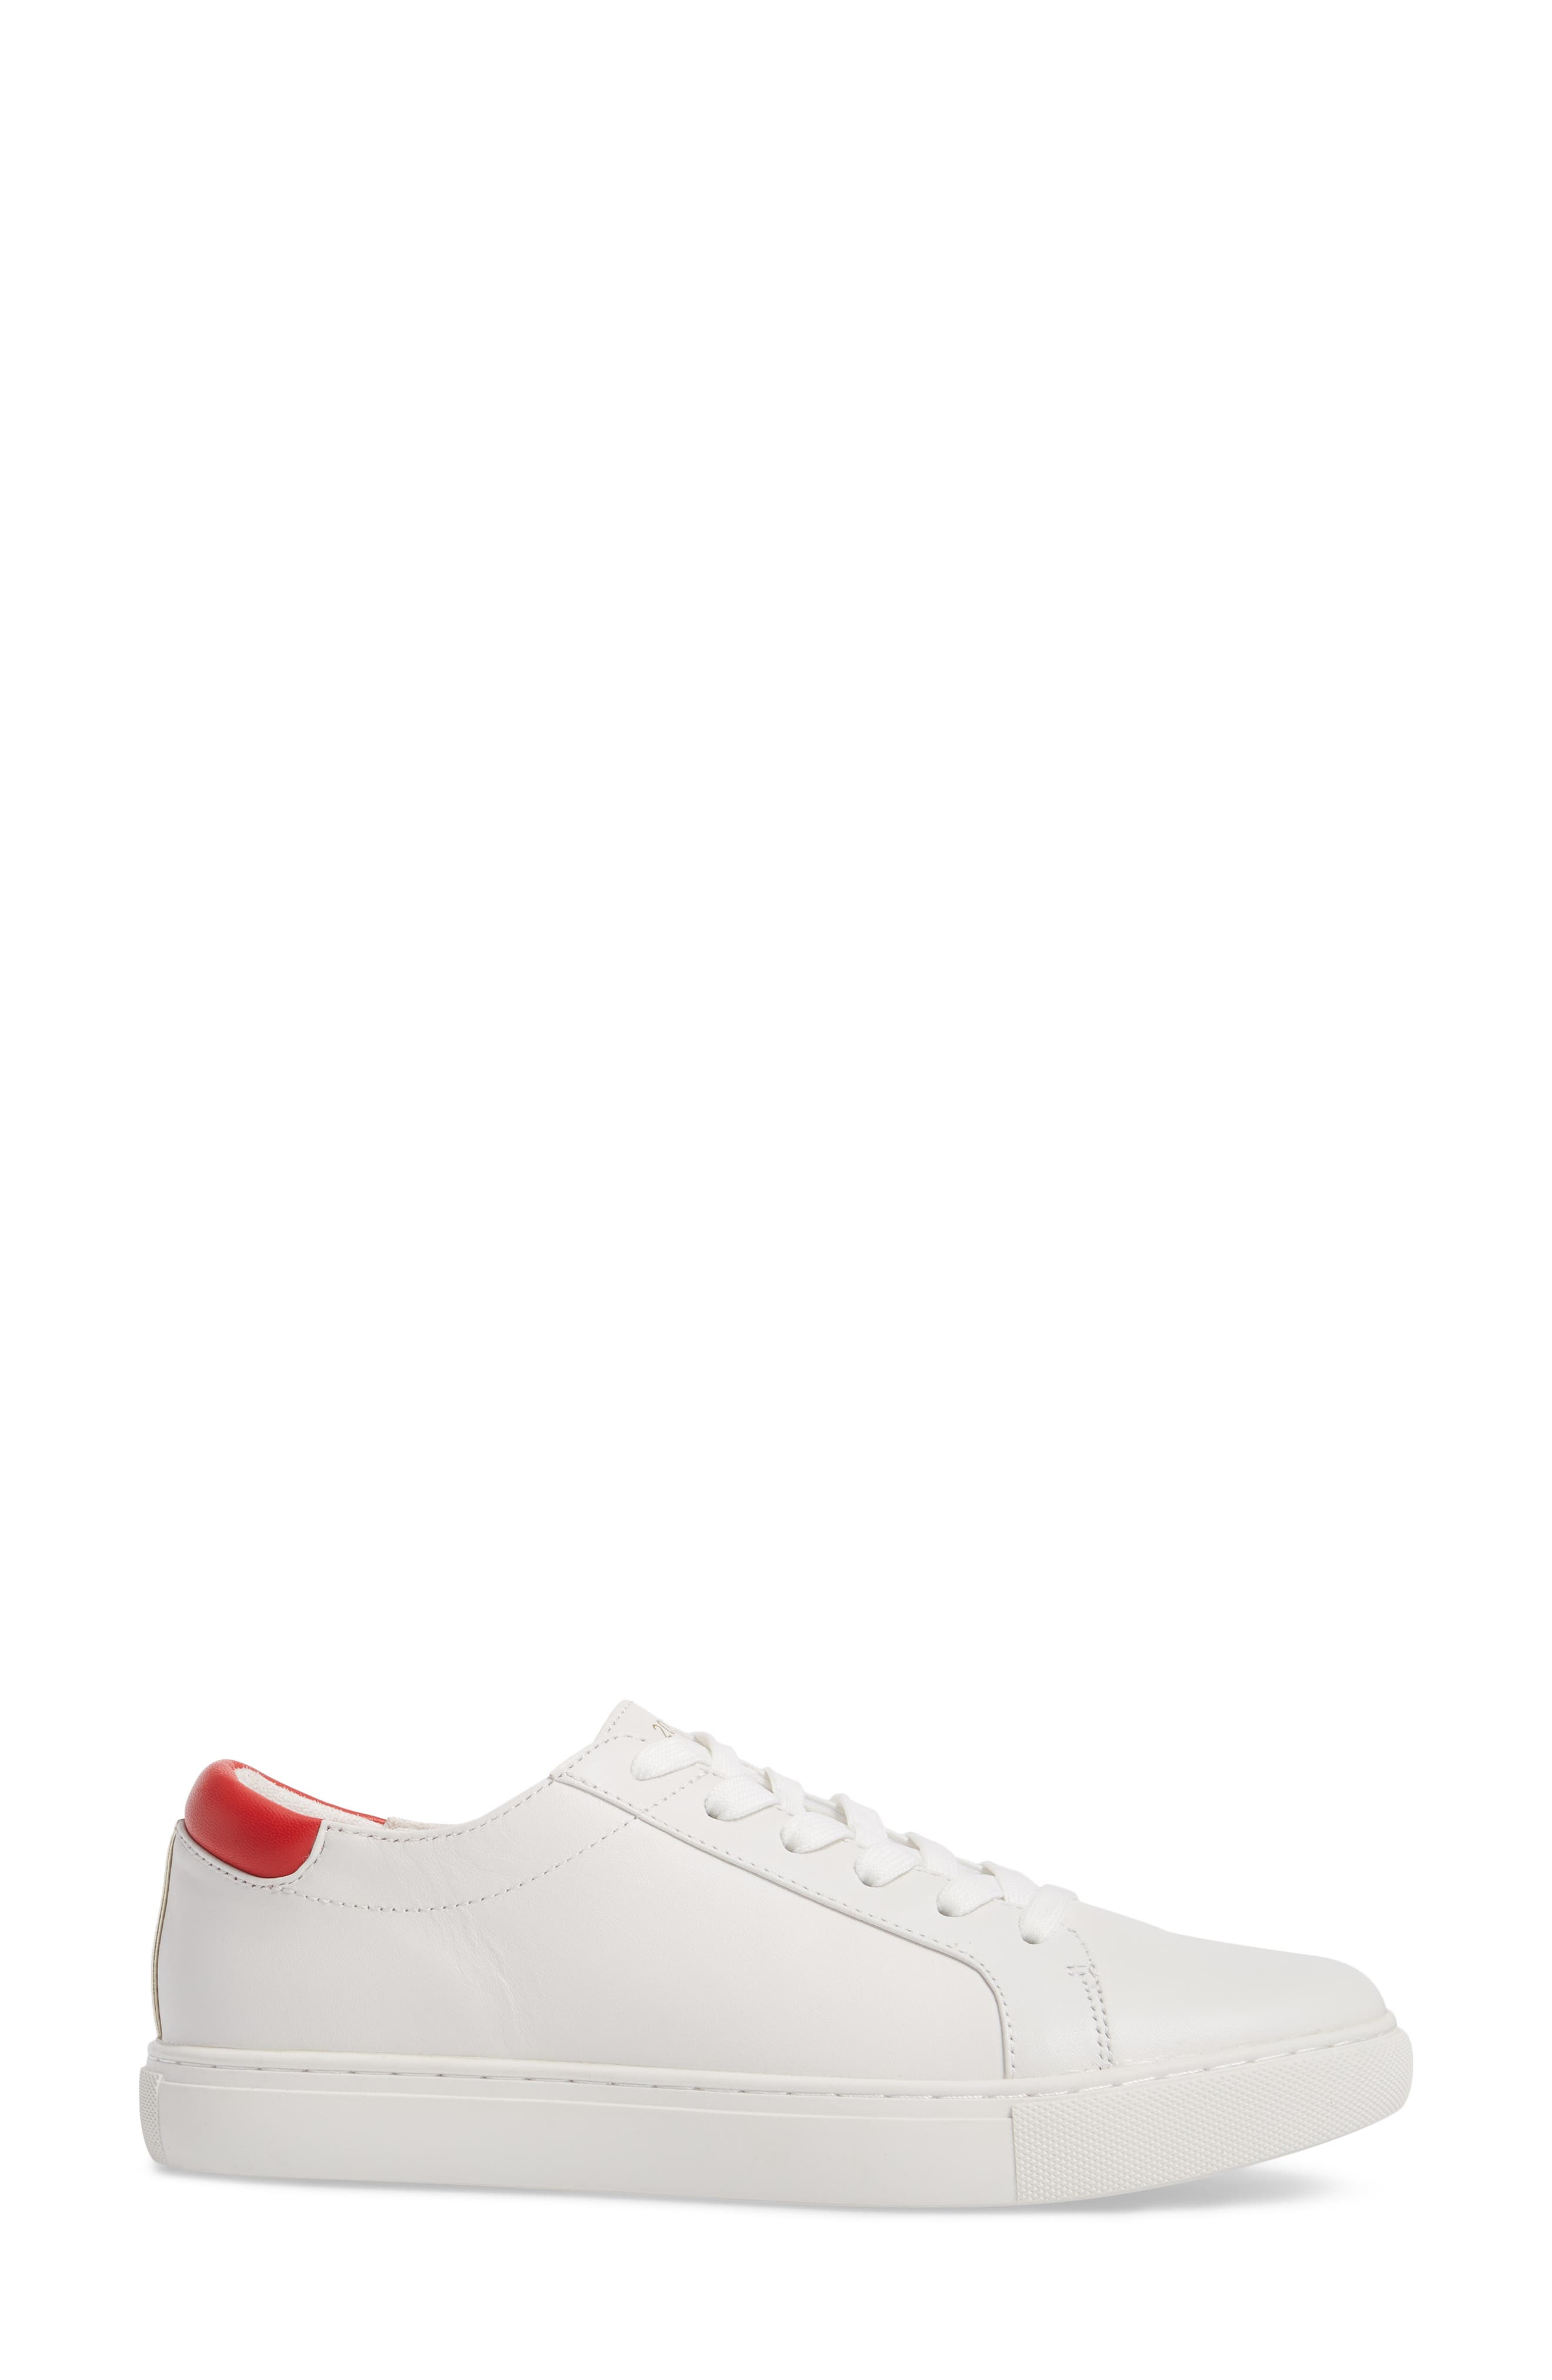 Cam Low Top Sneaker,                             Alternate thumbnail 6, color,